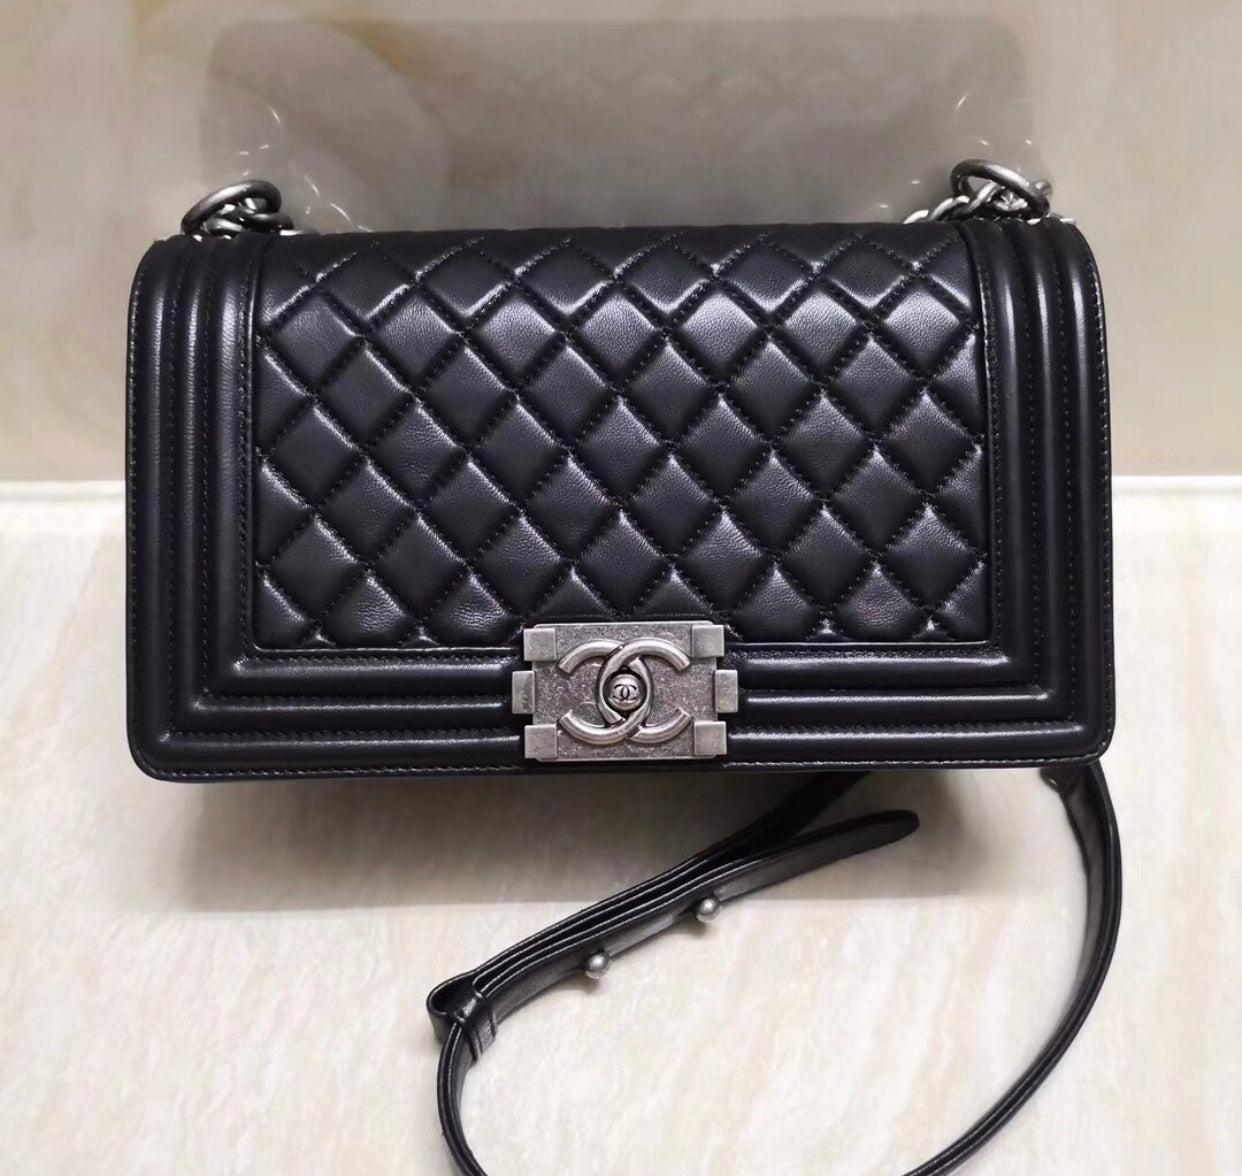 b46847c9aae1 CHANEL BLACK SILVER HARDWARE BOY BAG – BoujeeBallin'